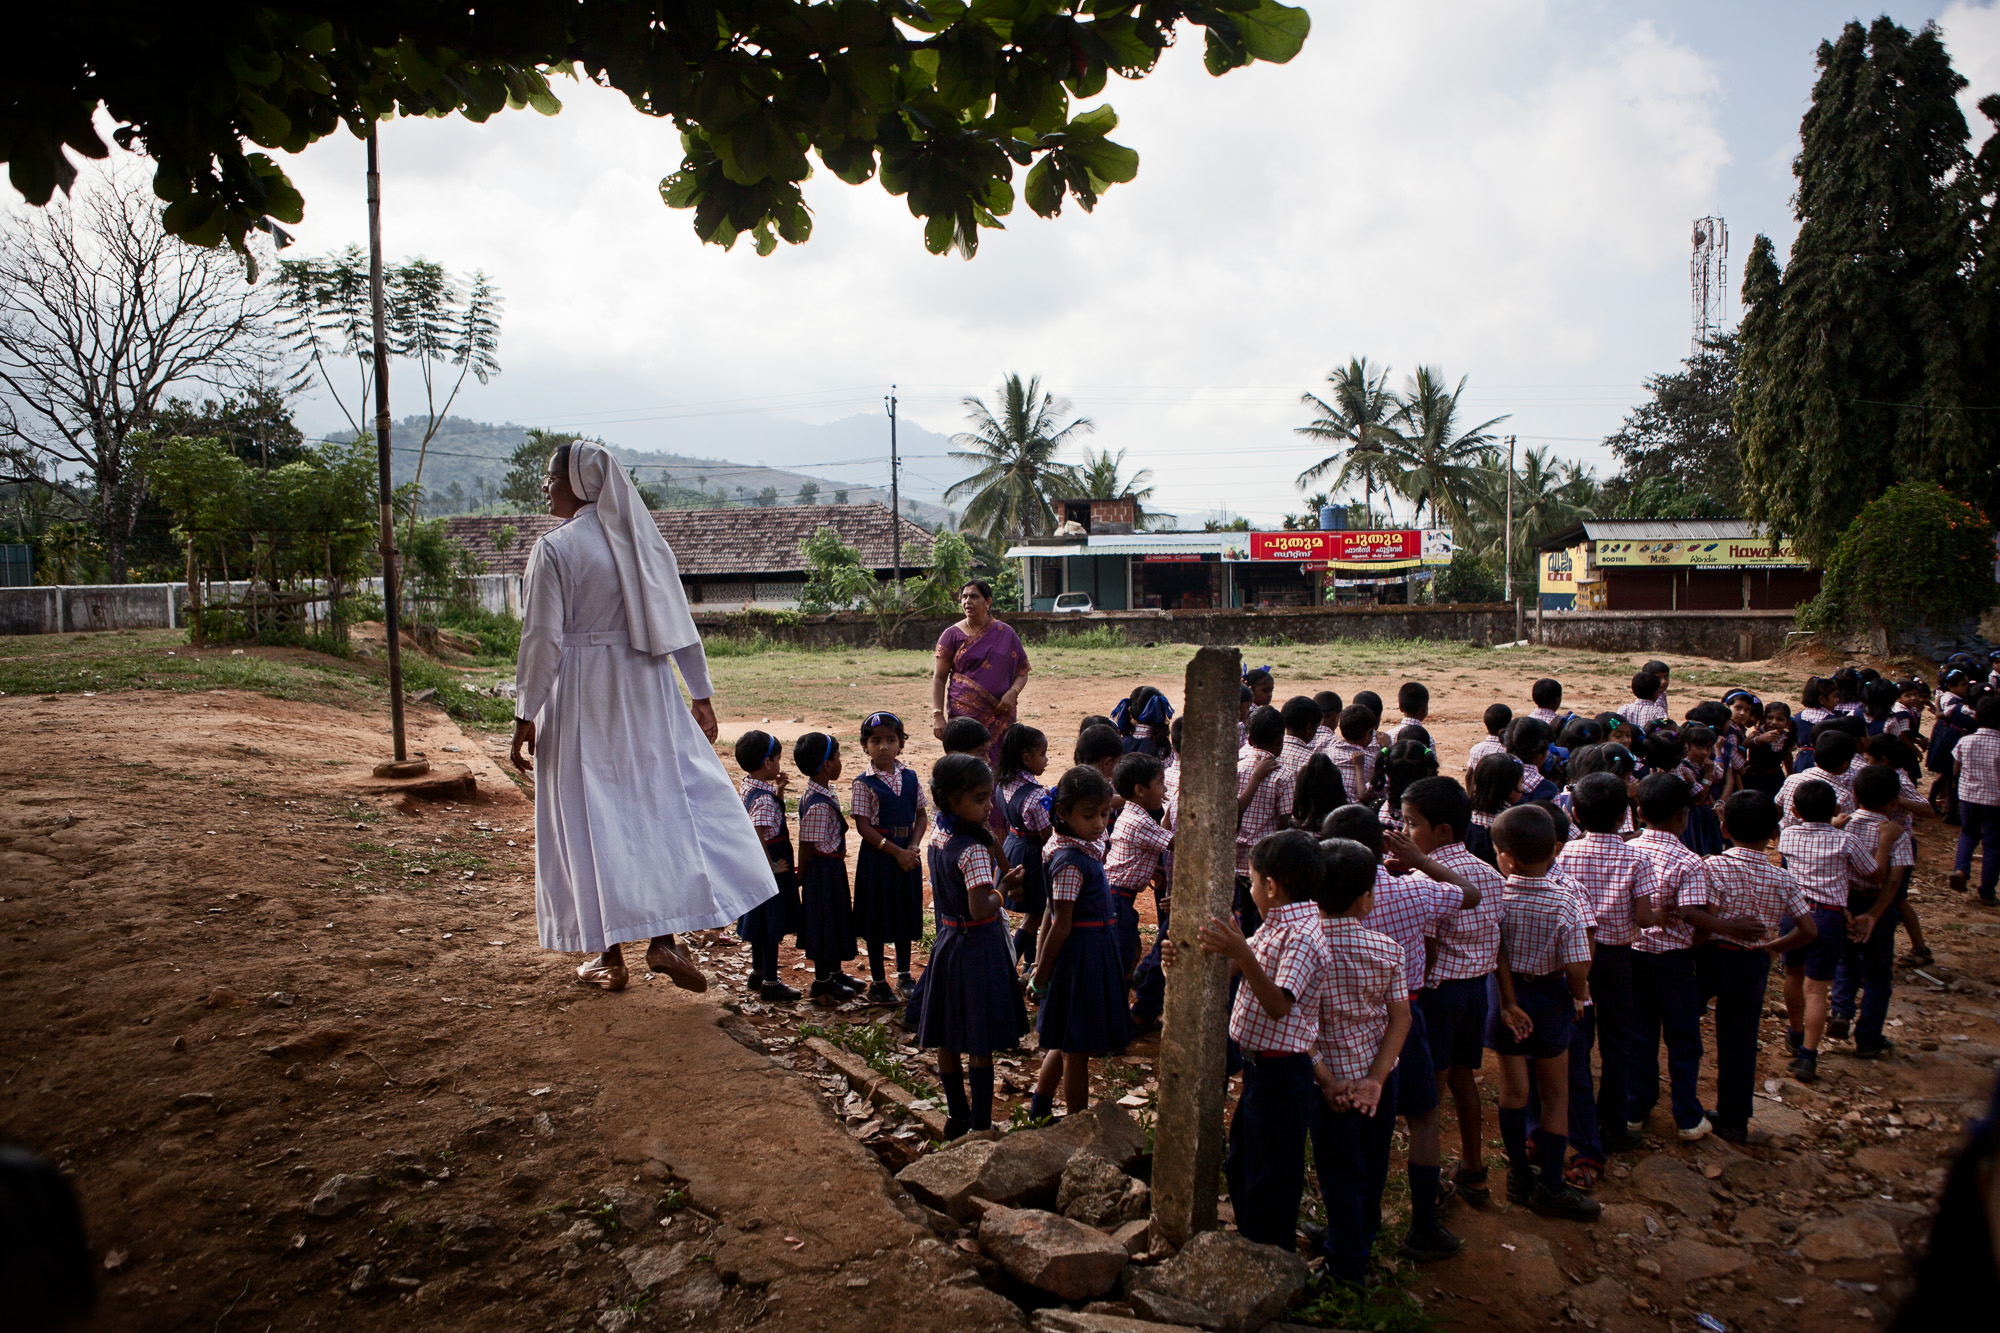 Sister Joshma finishes addressing the morning assembly at the Roman Catholic Lower Primary school (RCLP) before leading the children back to the classroom. Estate workers children, like their older brothers and sisters at the high school, are provided with free uniforms and bags from the tea estate as part of the welfare benefits.  This alleviates the pressure financially for many of the workers, especially women, as they are lowly paid.